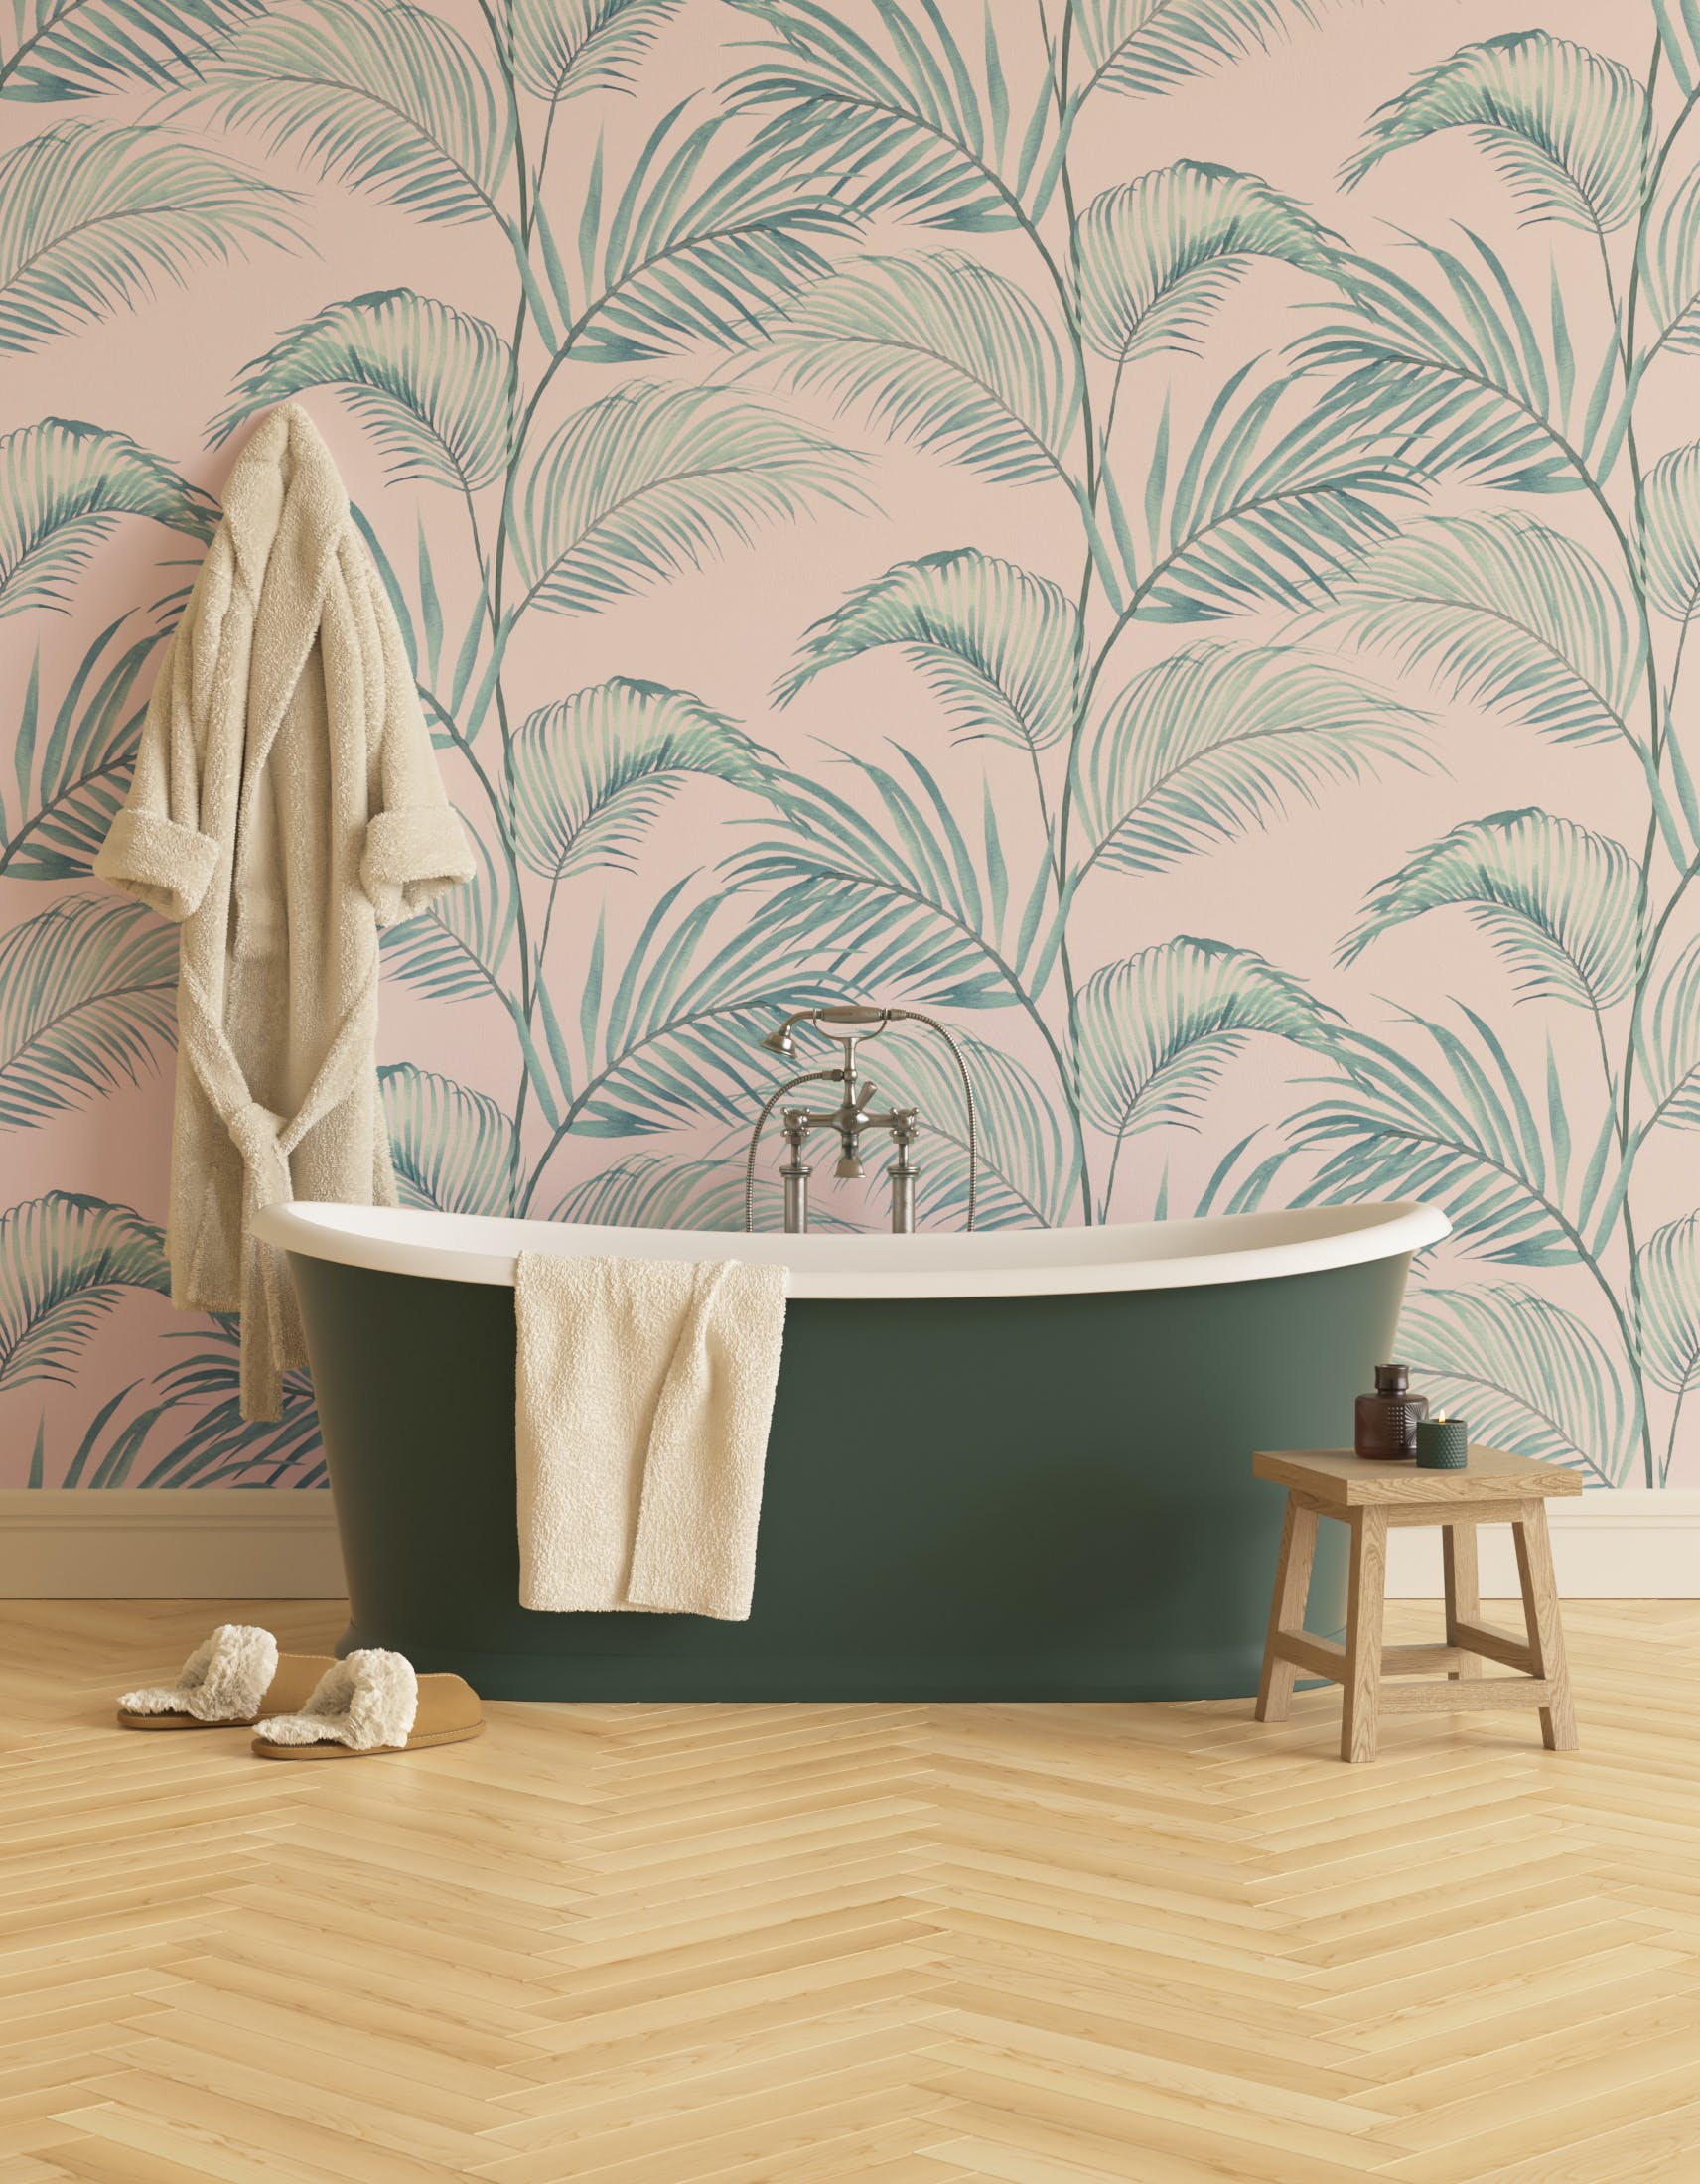 Bathroom decorated with Lick x Belinda Bayley Jungle 02 pink and green palm leaf wallpaper